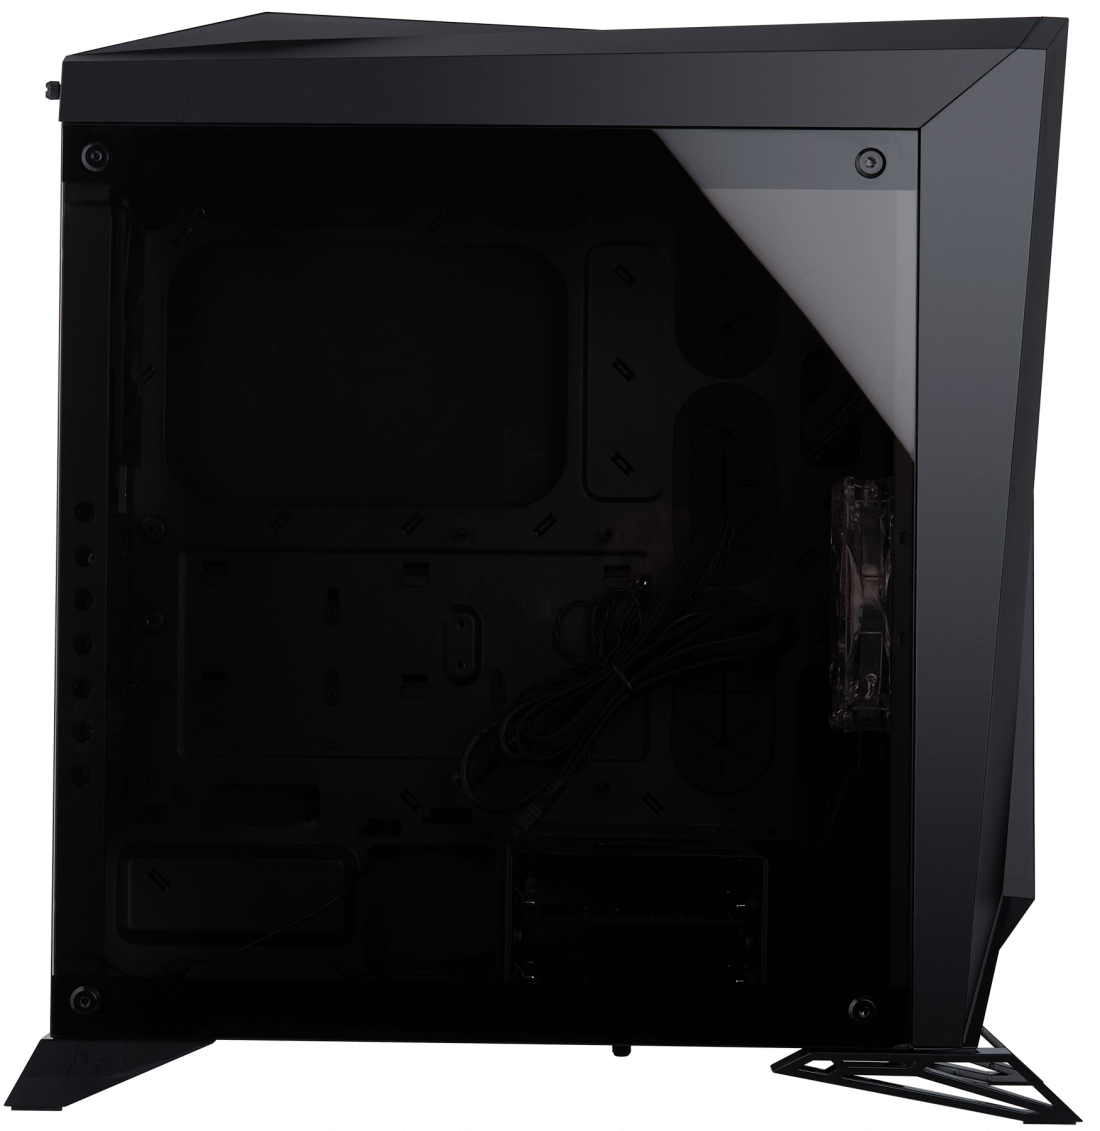 Corsair Carbide Spec Omega